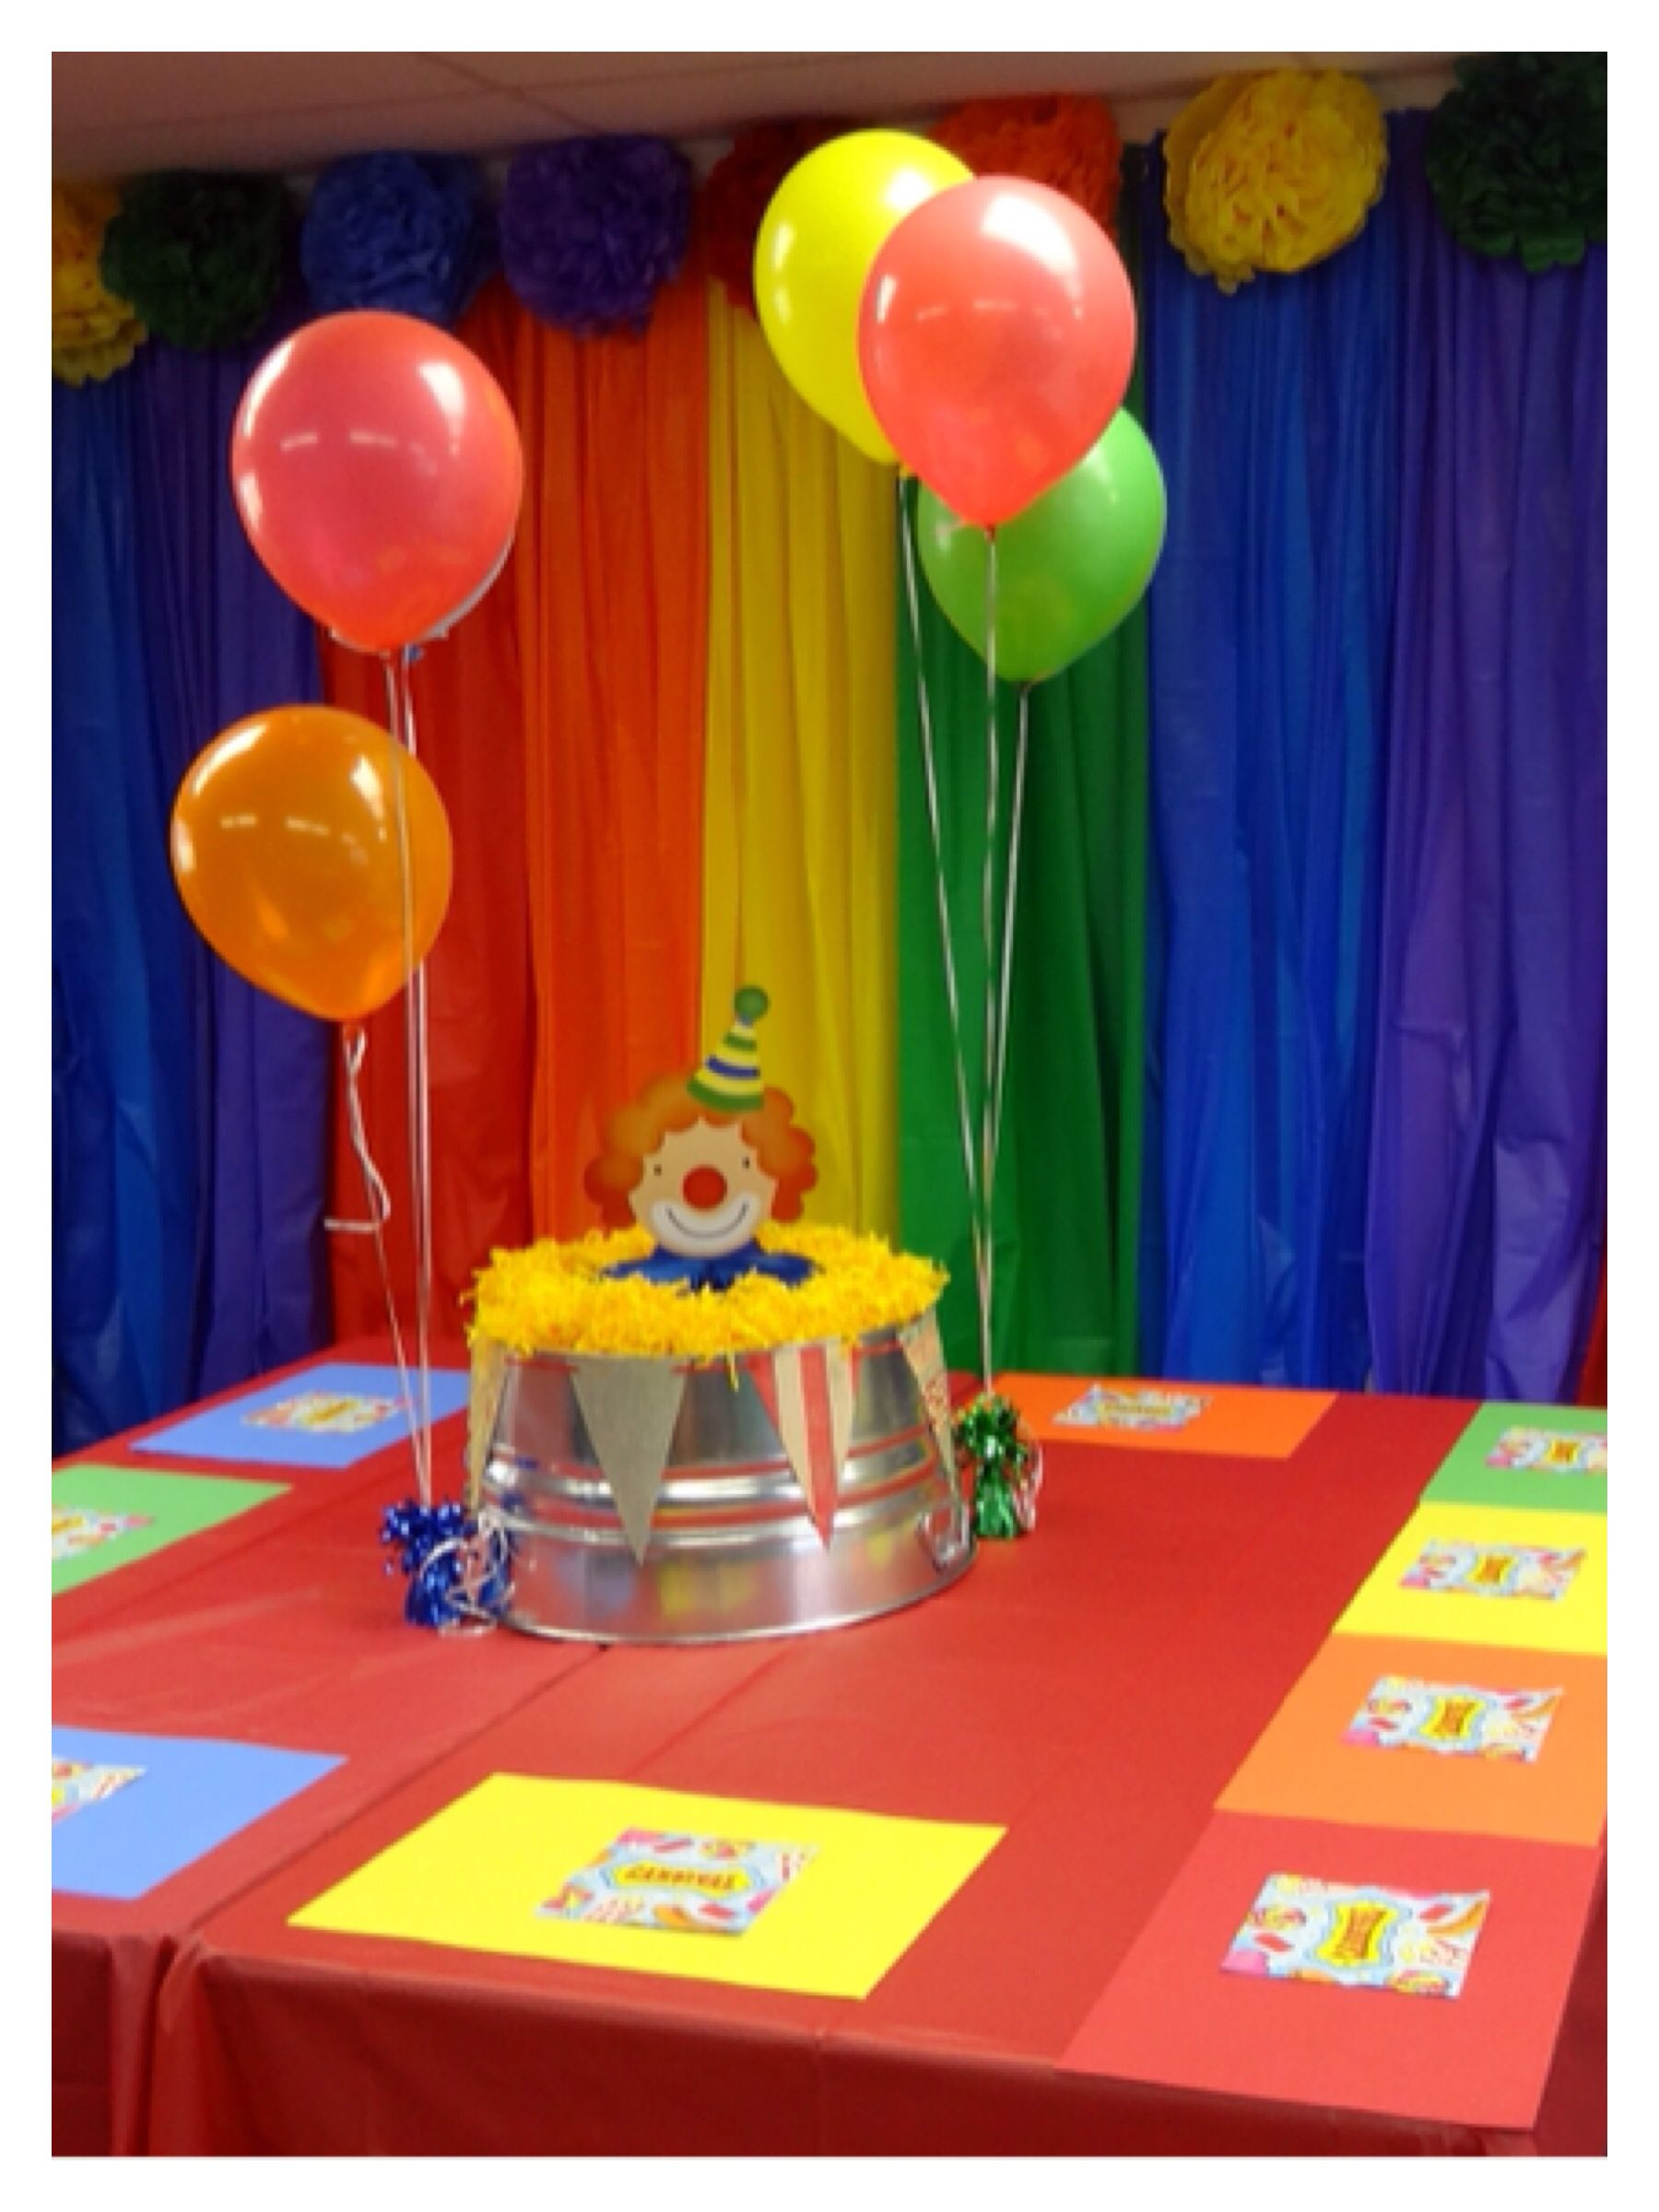 Circus Themed Table Decorations Part - 22: Carnival Or Circus Theme Backdrop, Table, Decorations For School Party.